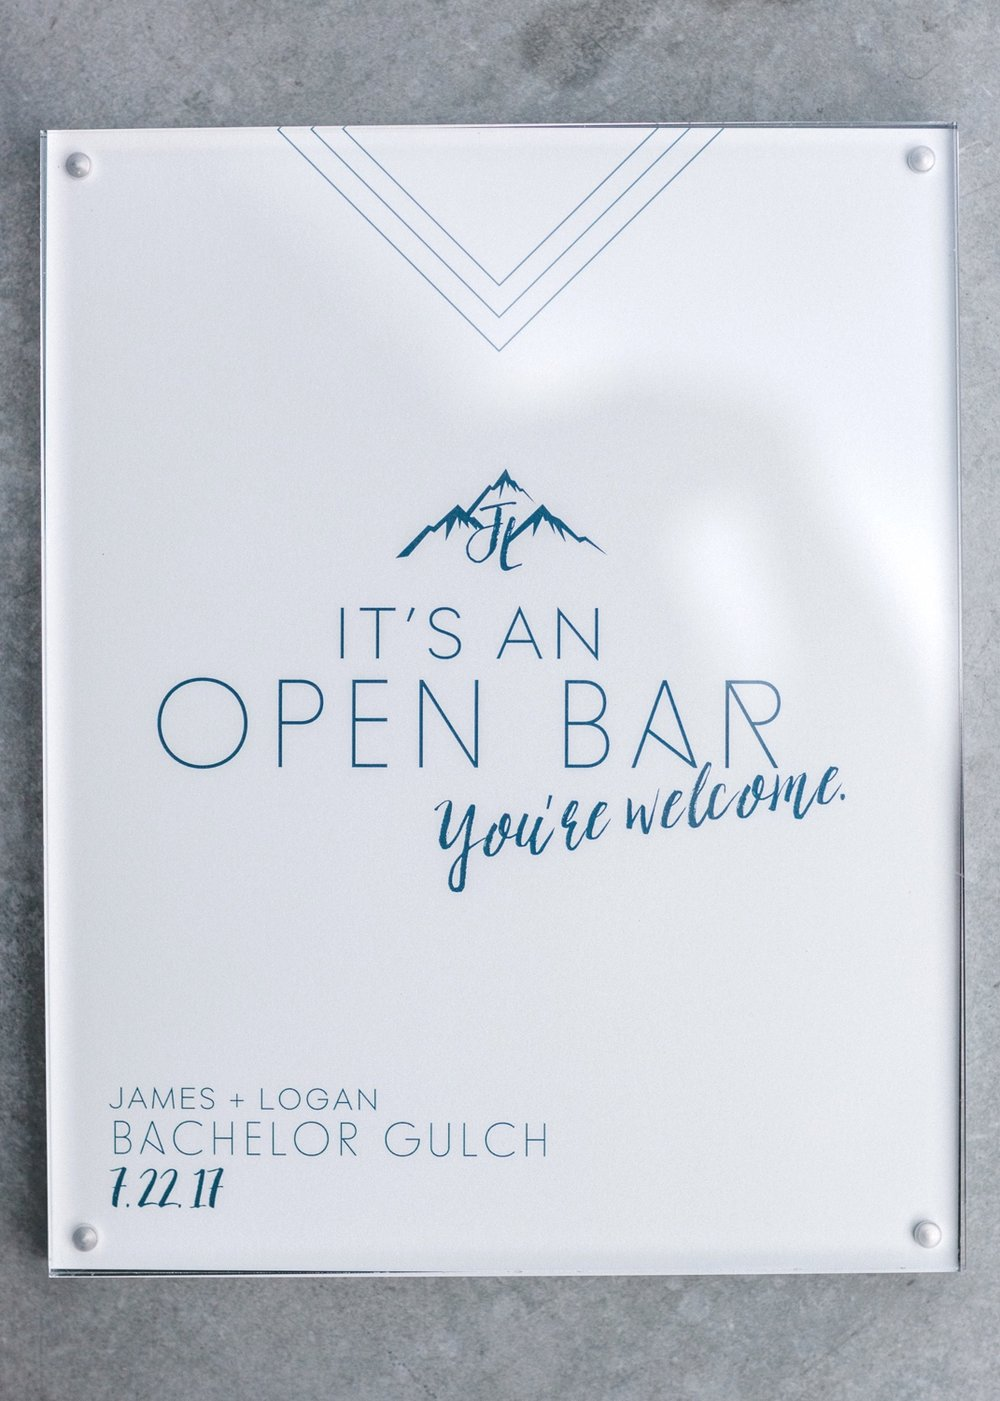 Open bar sign for wedding | Cat Mayer